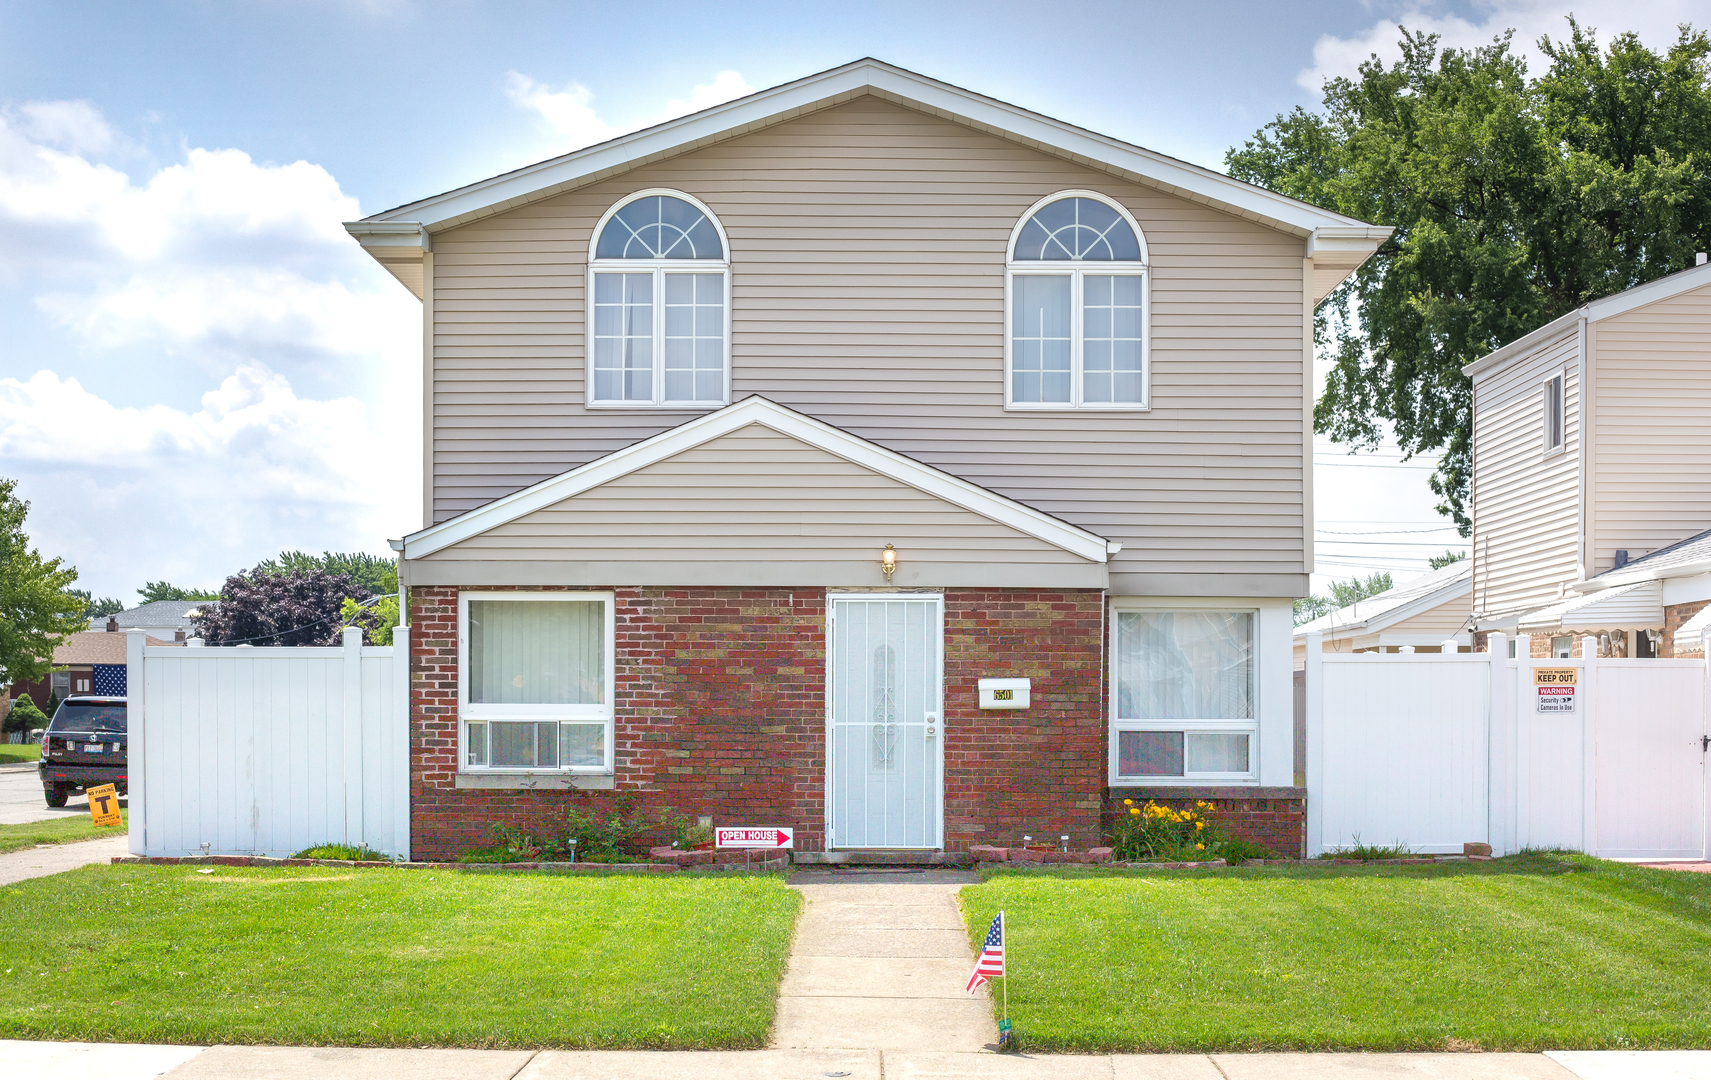 6501 West 60th Place Chicago, IL 60638